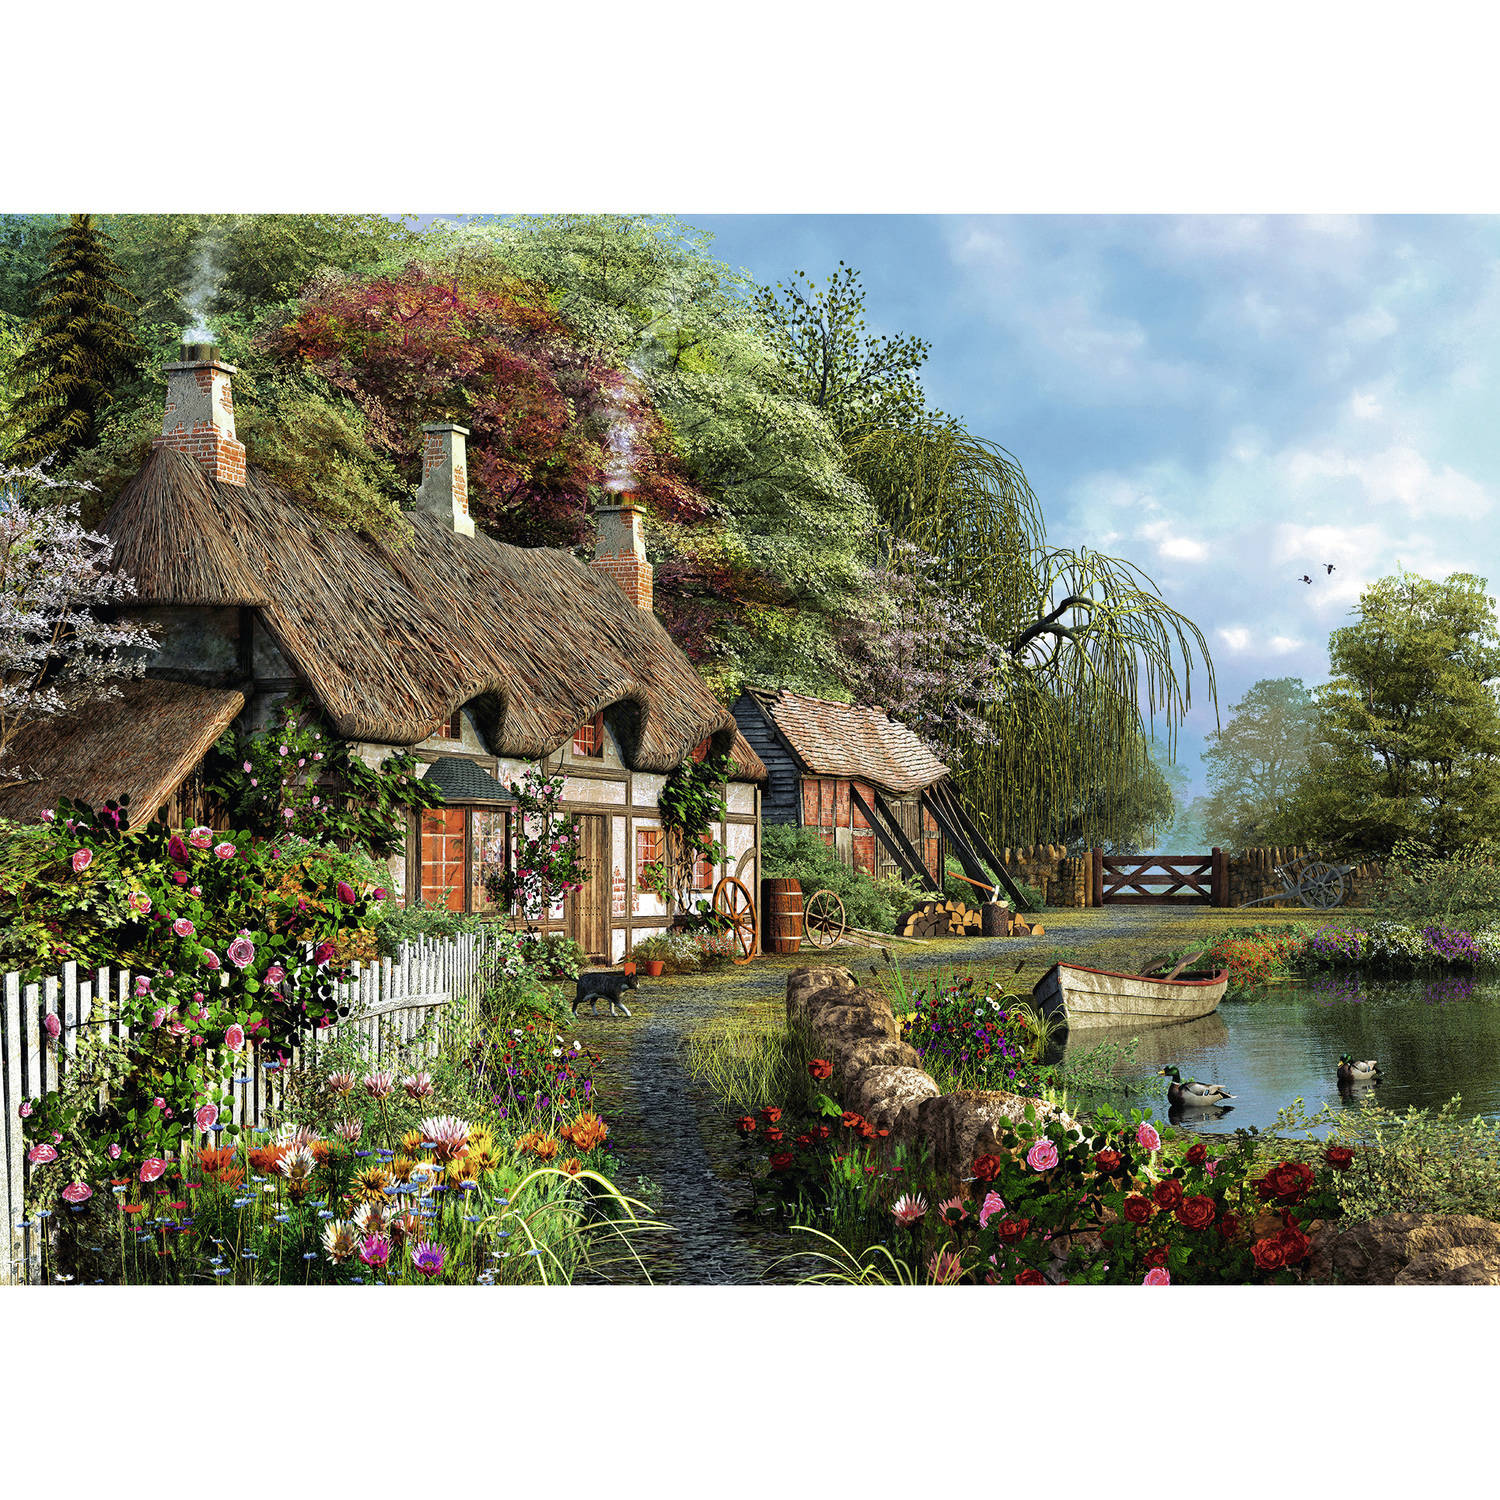 Cottage on a Lake Puzzle by Ravensburger USA Inc